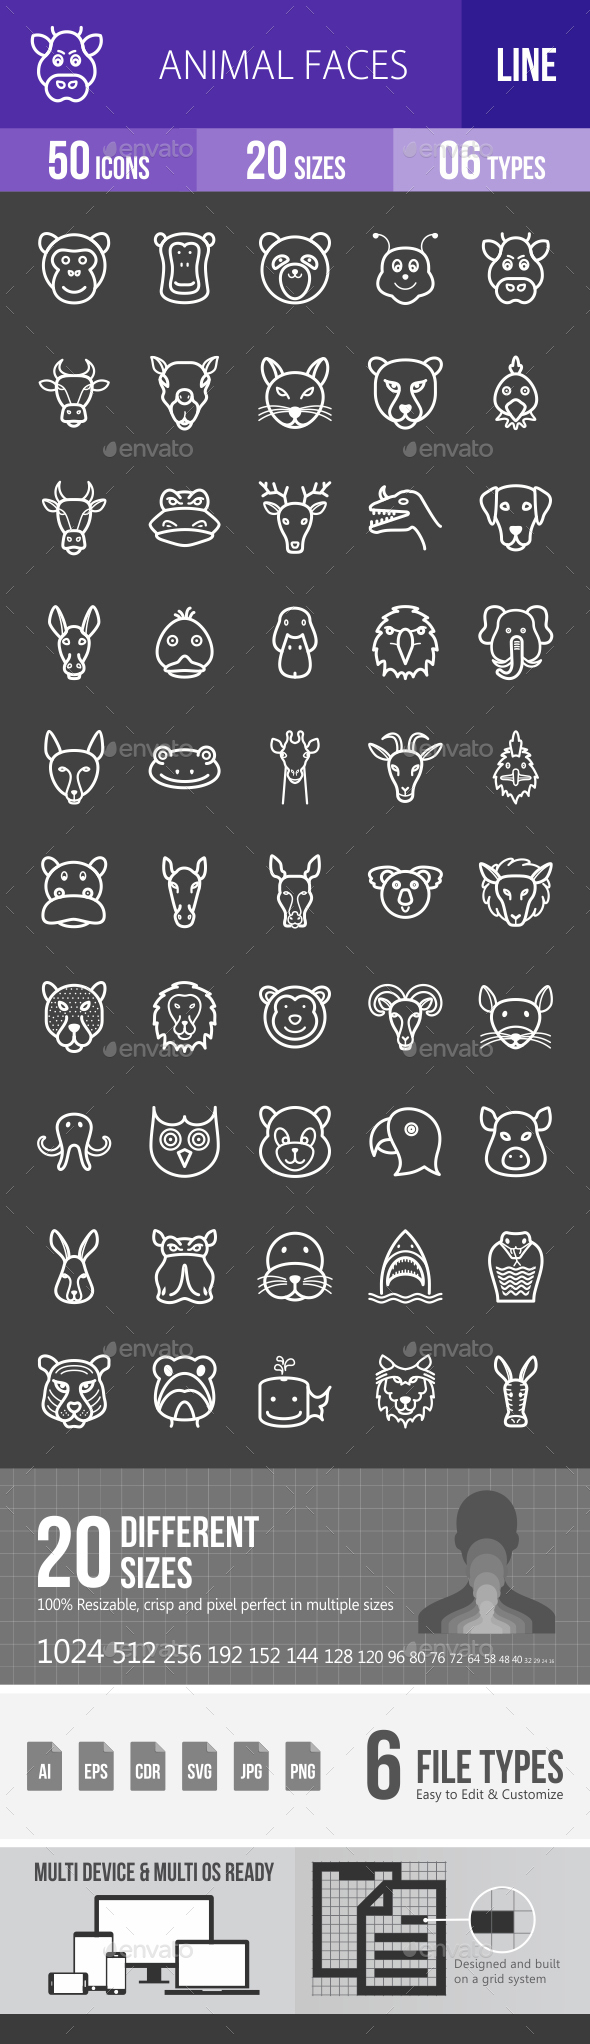 Animal Faces Line Inverted Icons - Icons